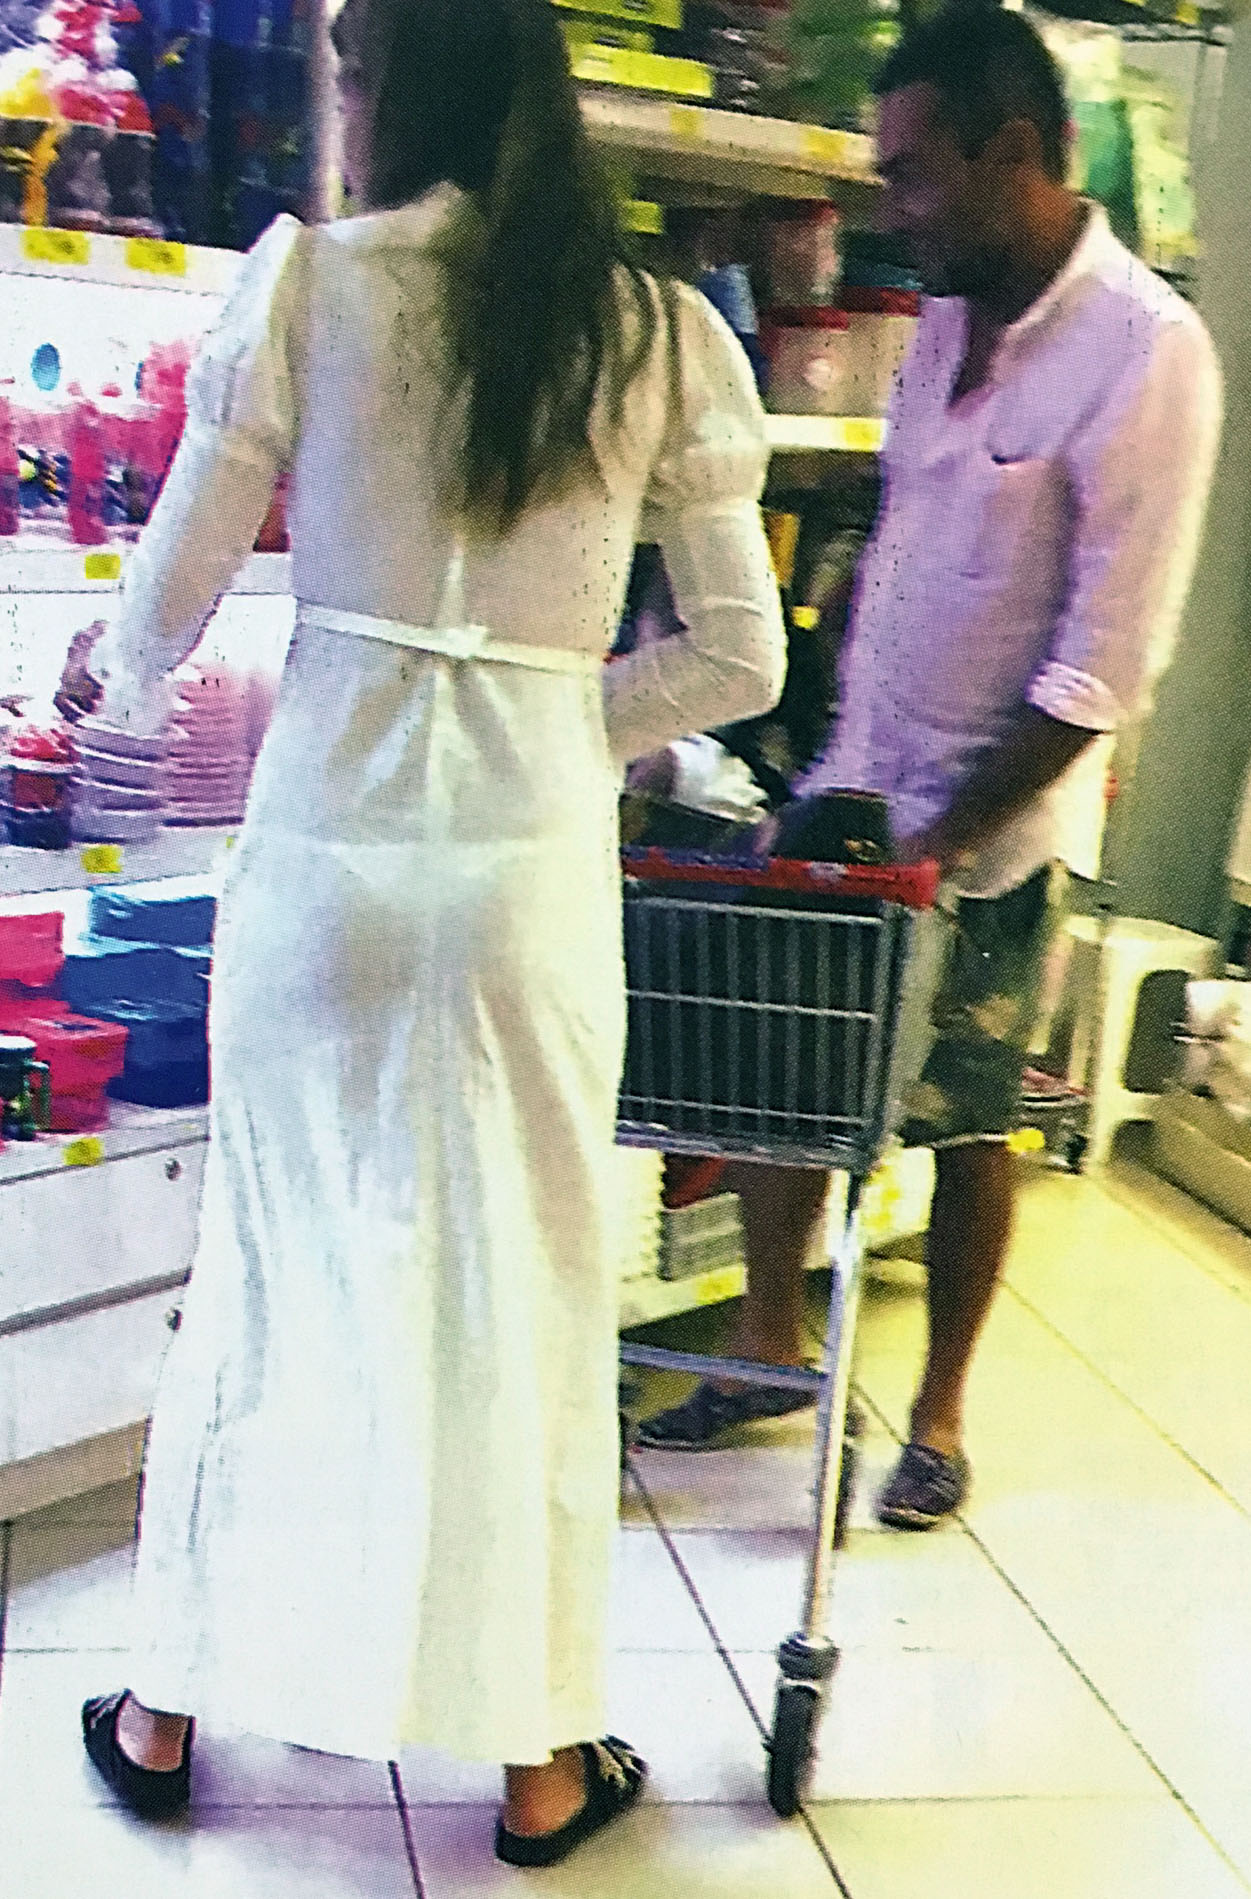 El osado look de la china su rez para ir al supermercado Ver ultimas noticias del espectaculo argentino